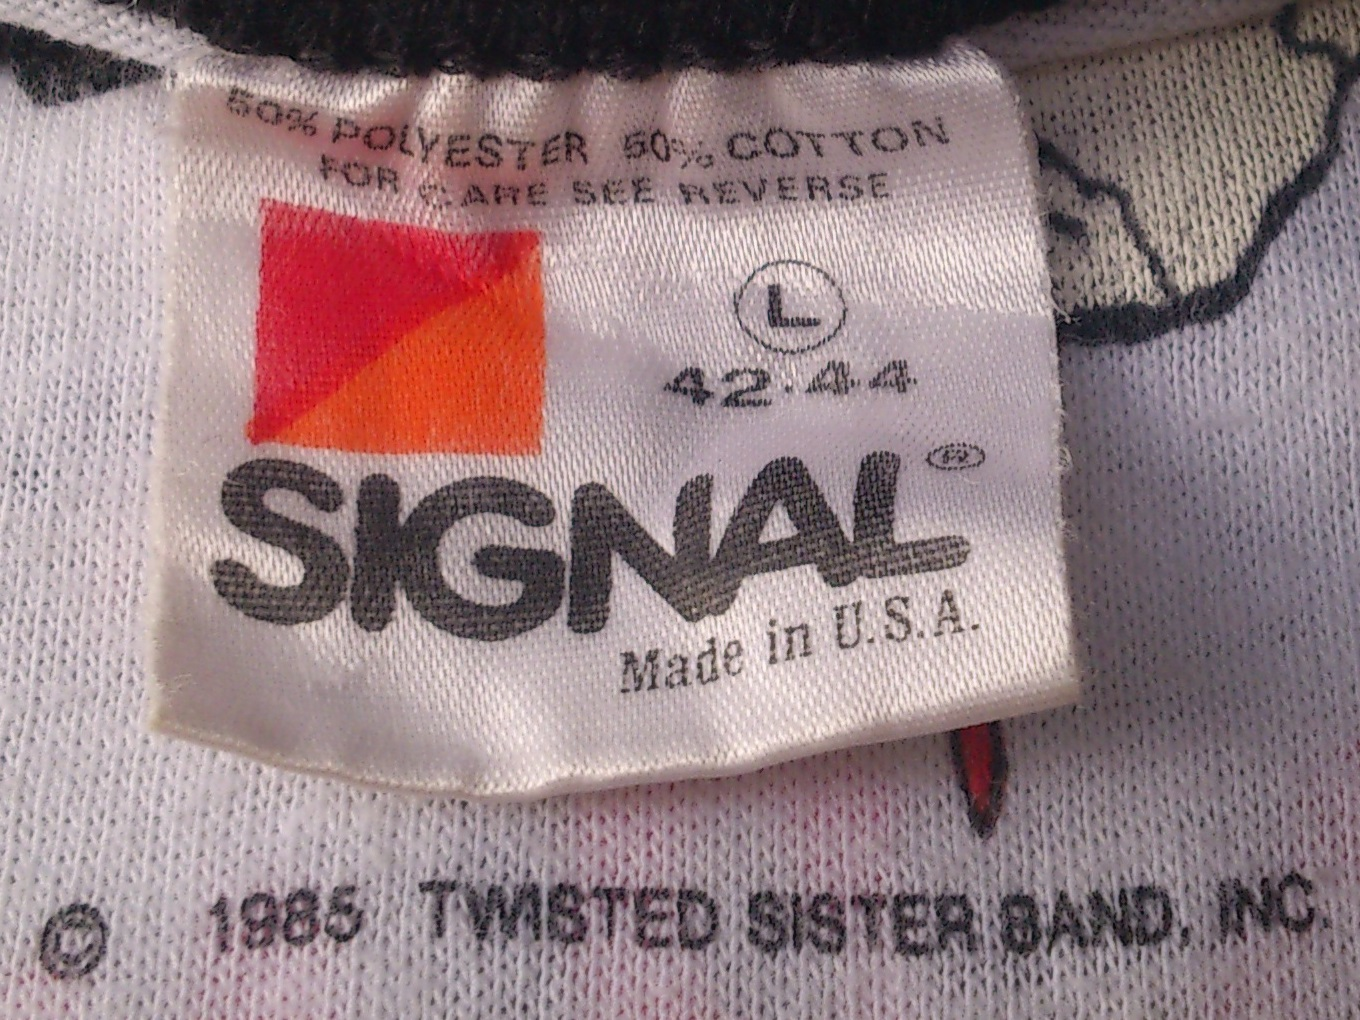 ad45523f57b83 Chakoi Bundle: Vintage '85 TWISTED SISTER 'Come Out & Play' 3 ...